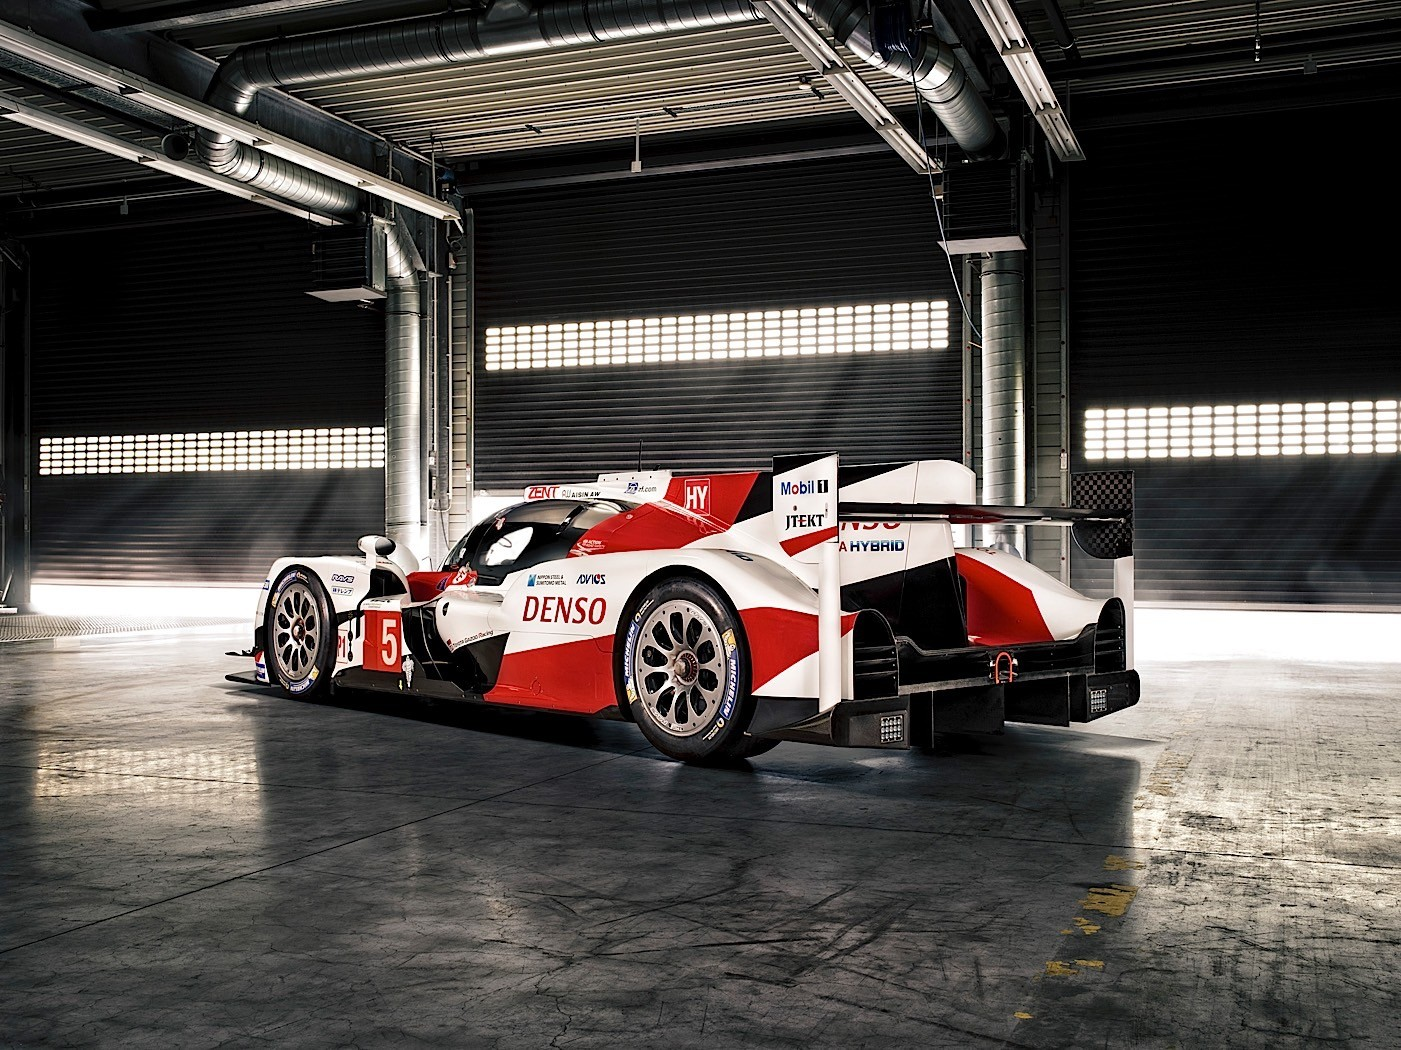 Aston Martin Race Car Wallpaper 2016 Toyota Ts050 Hybrid Is Latest Lmp1 Le Mans Racer To